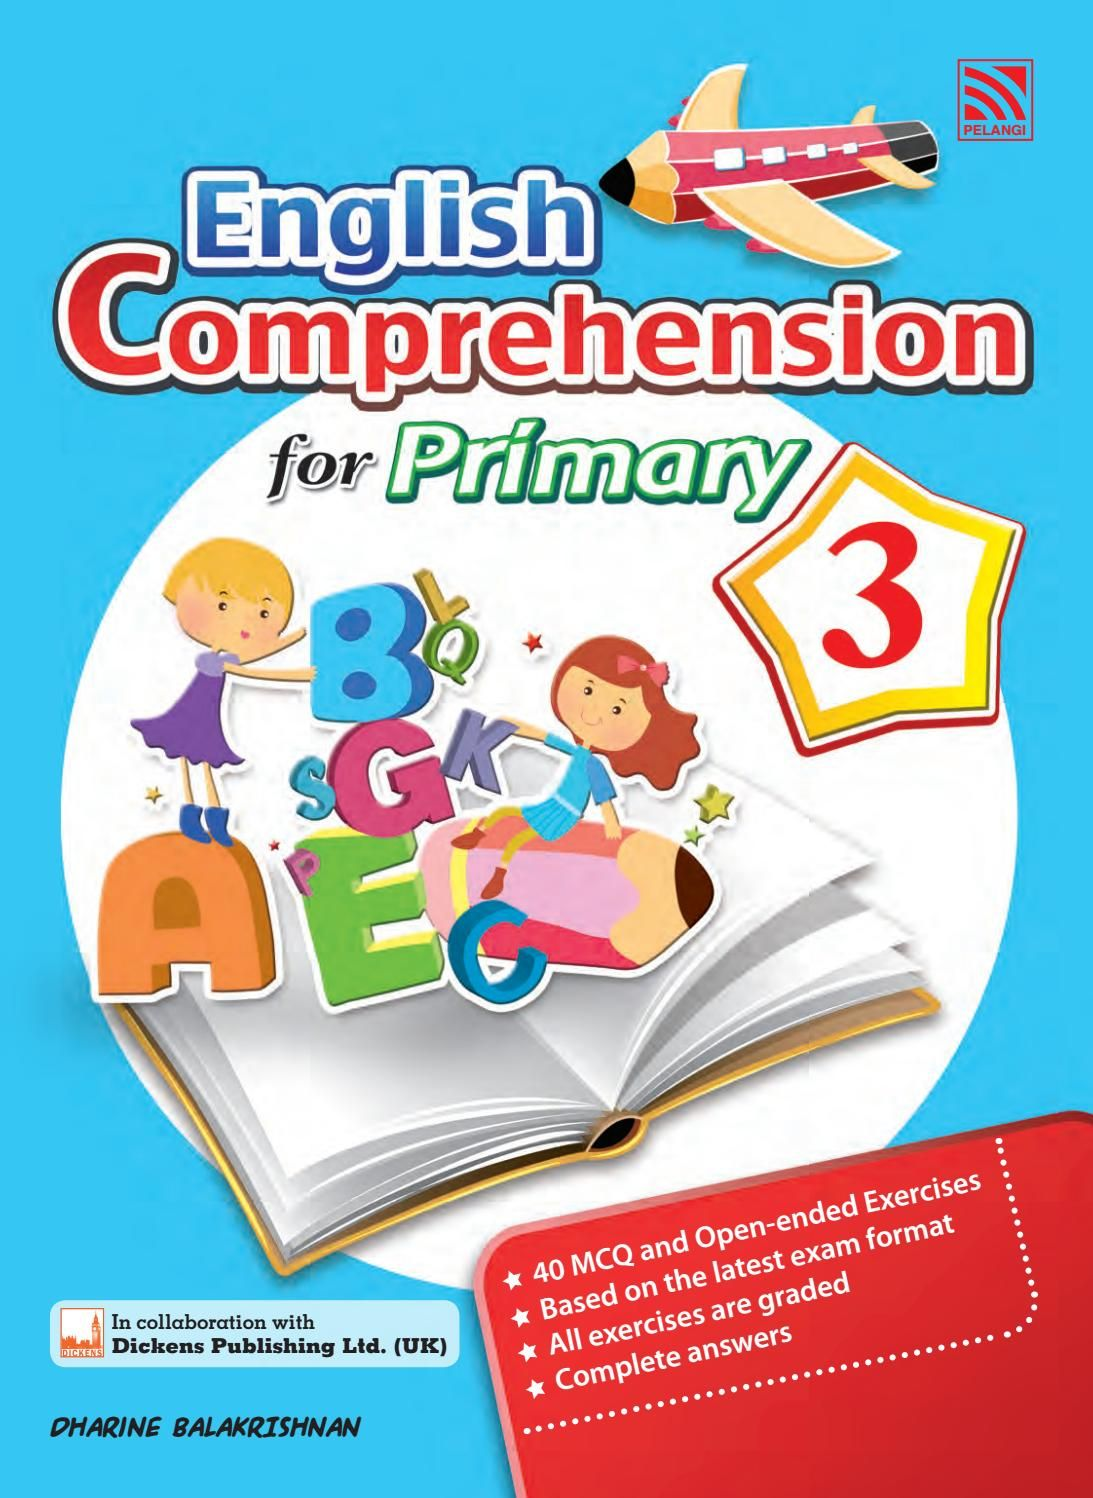 Model Compositions For Primary 3 English Textbook English